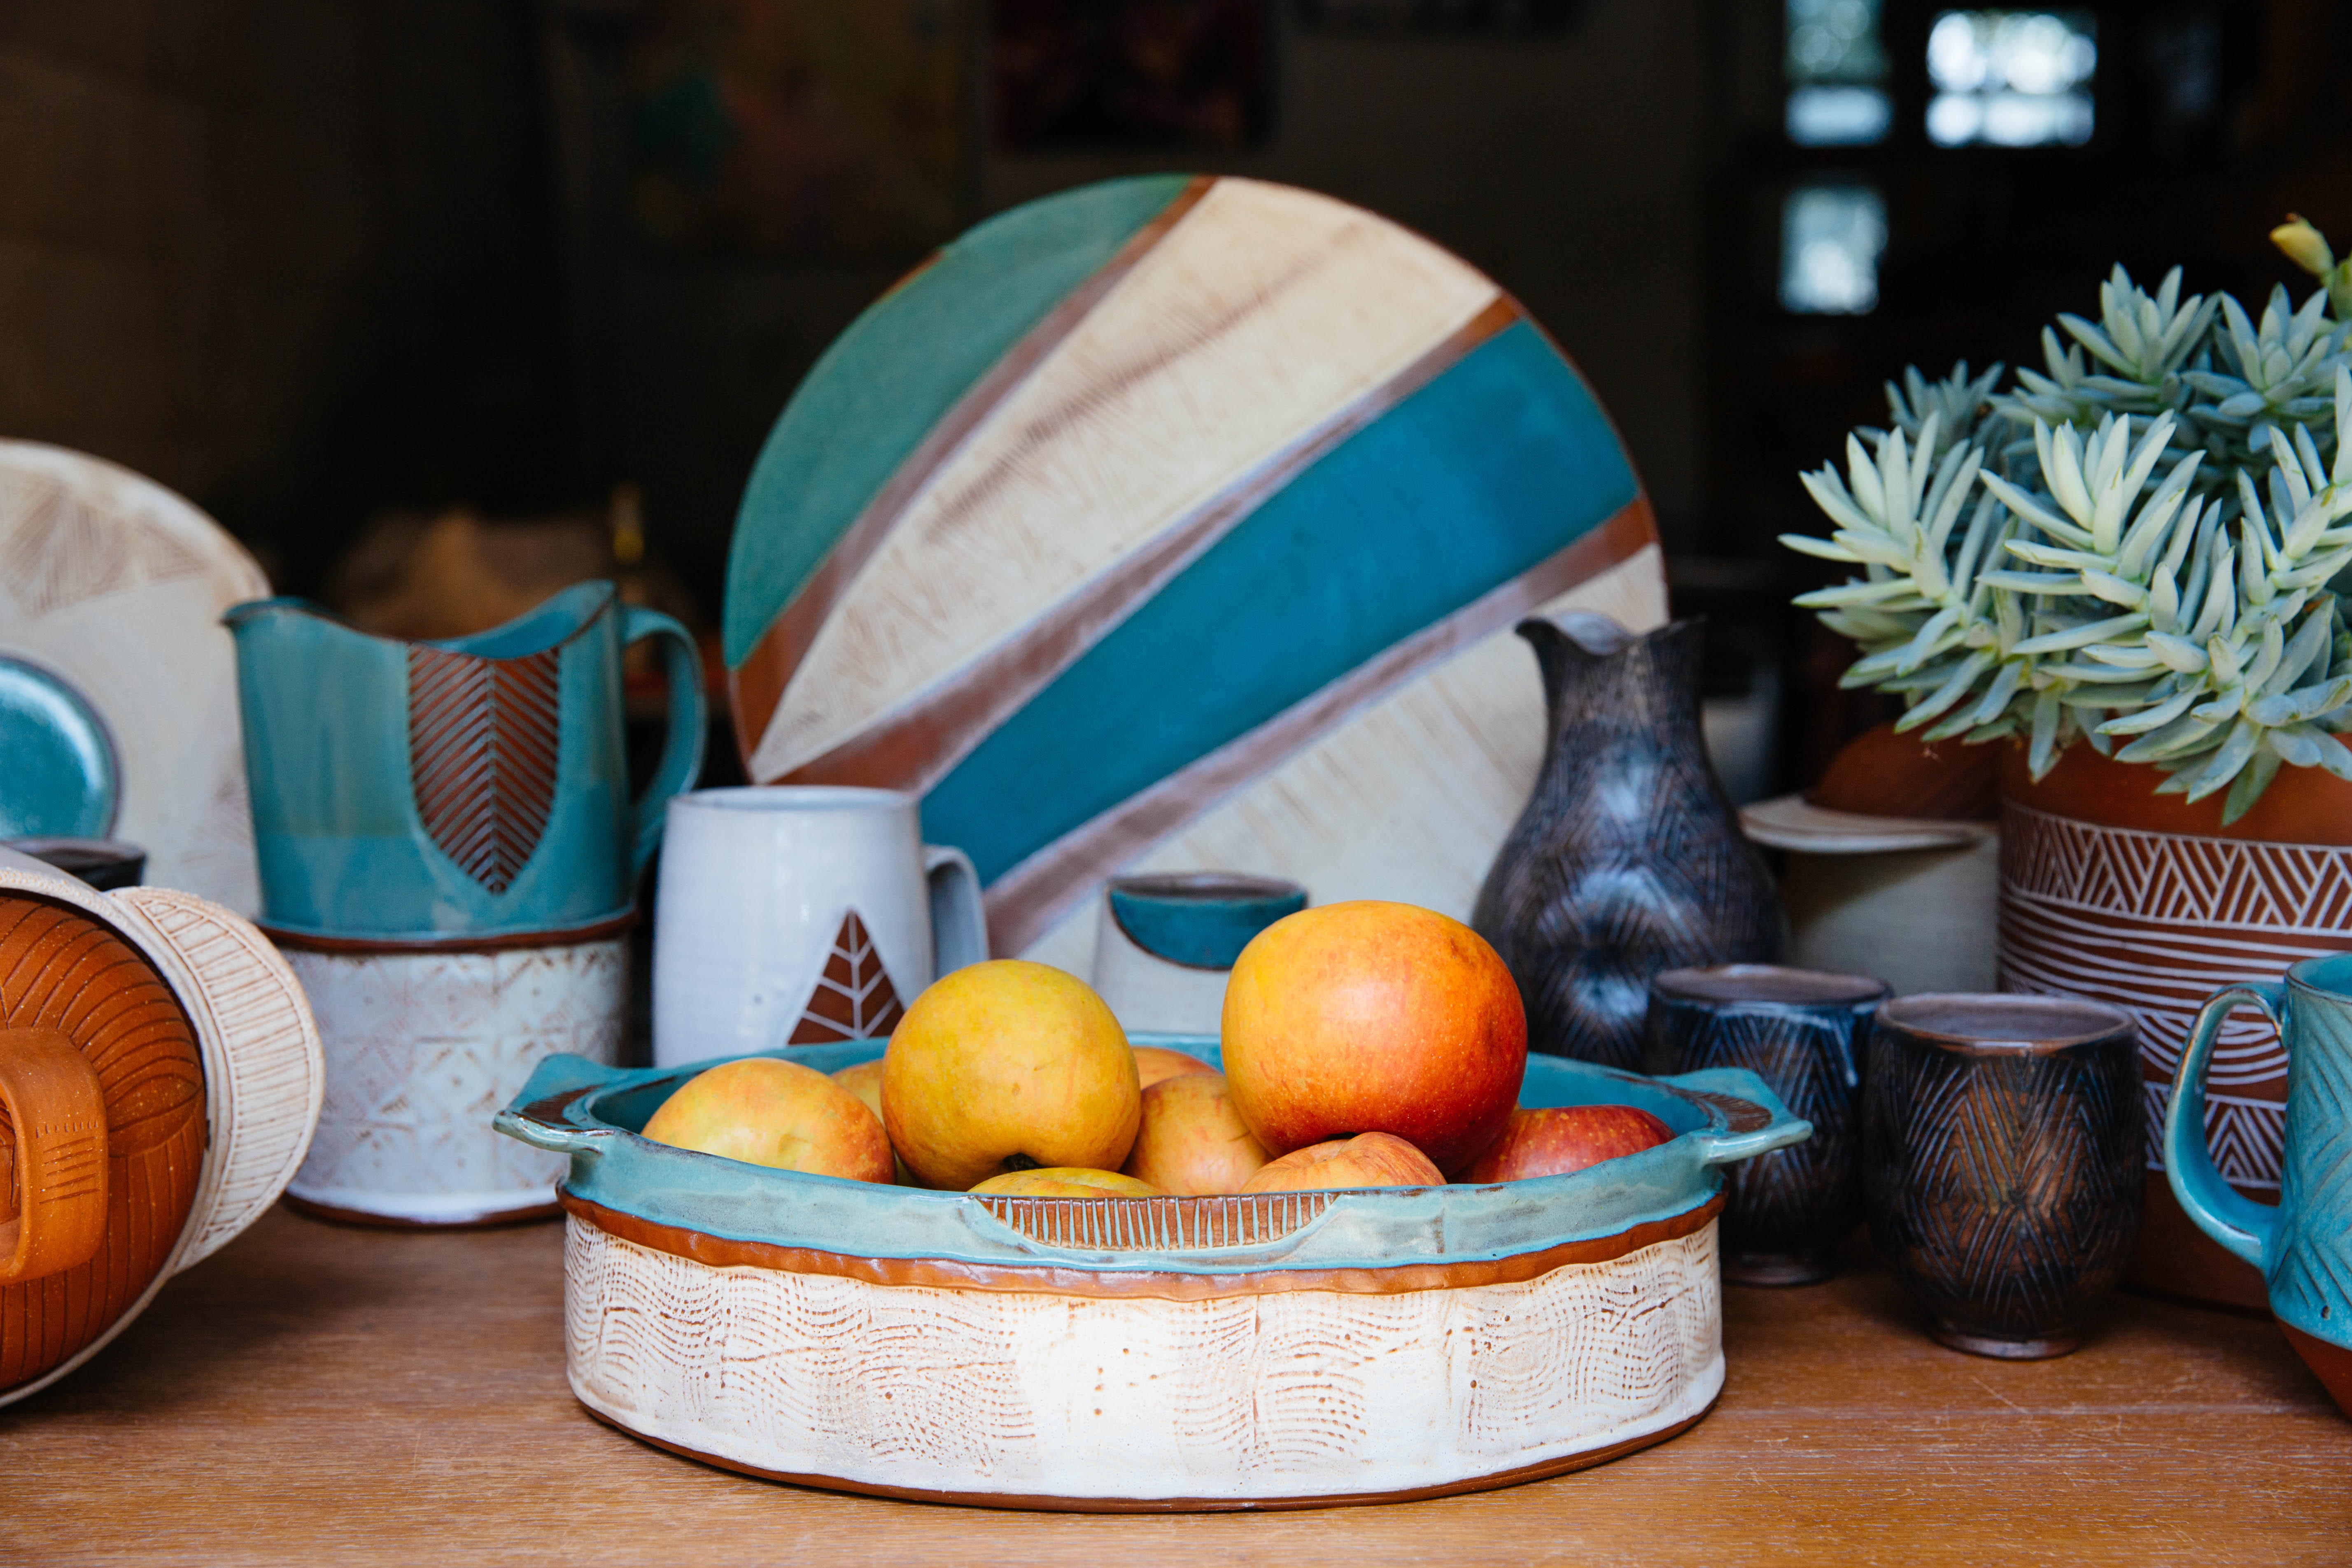 turquoise ceramic pottery with oranges